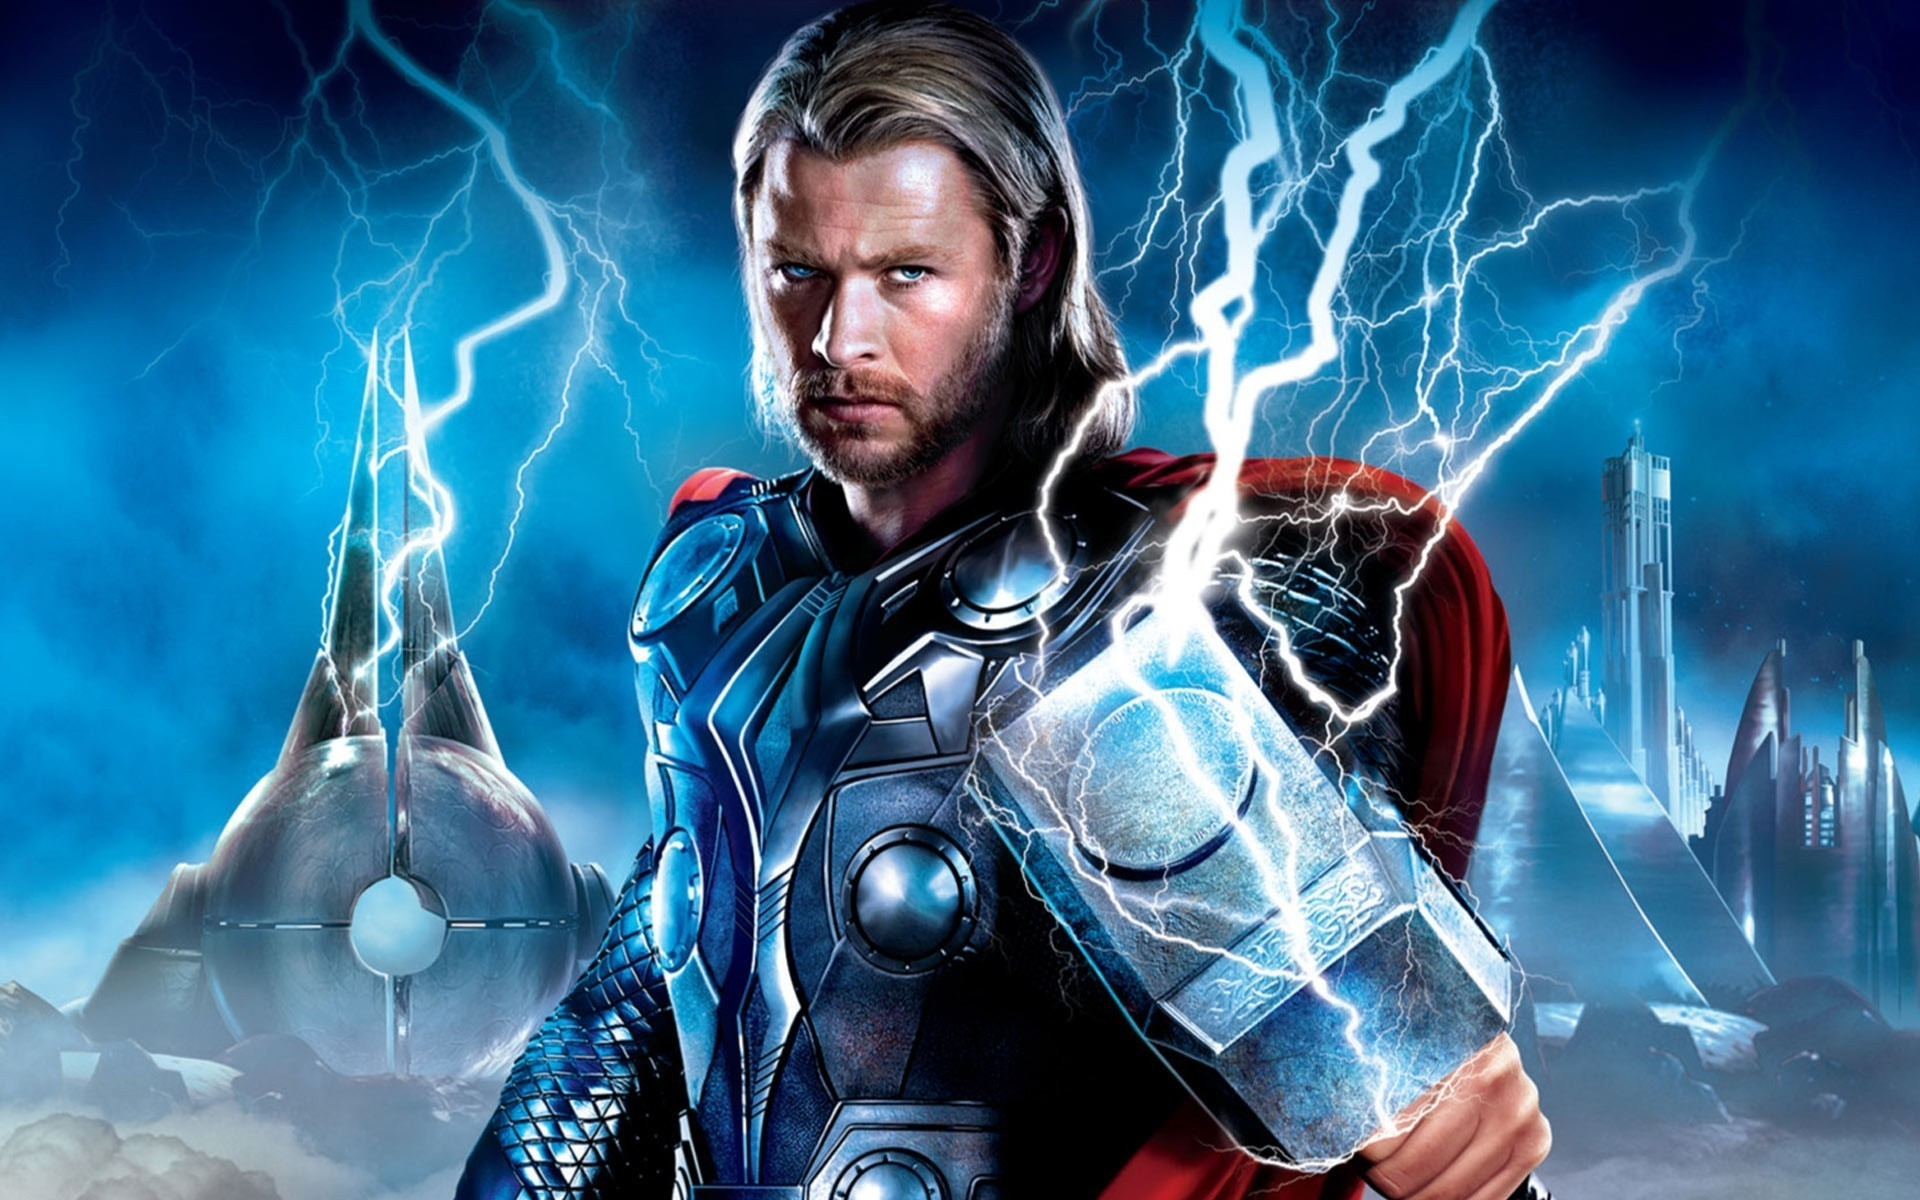 thor movie wallpaper